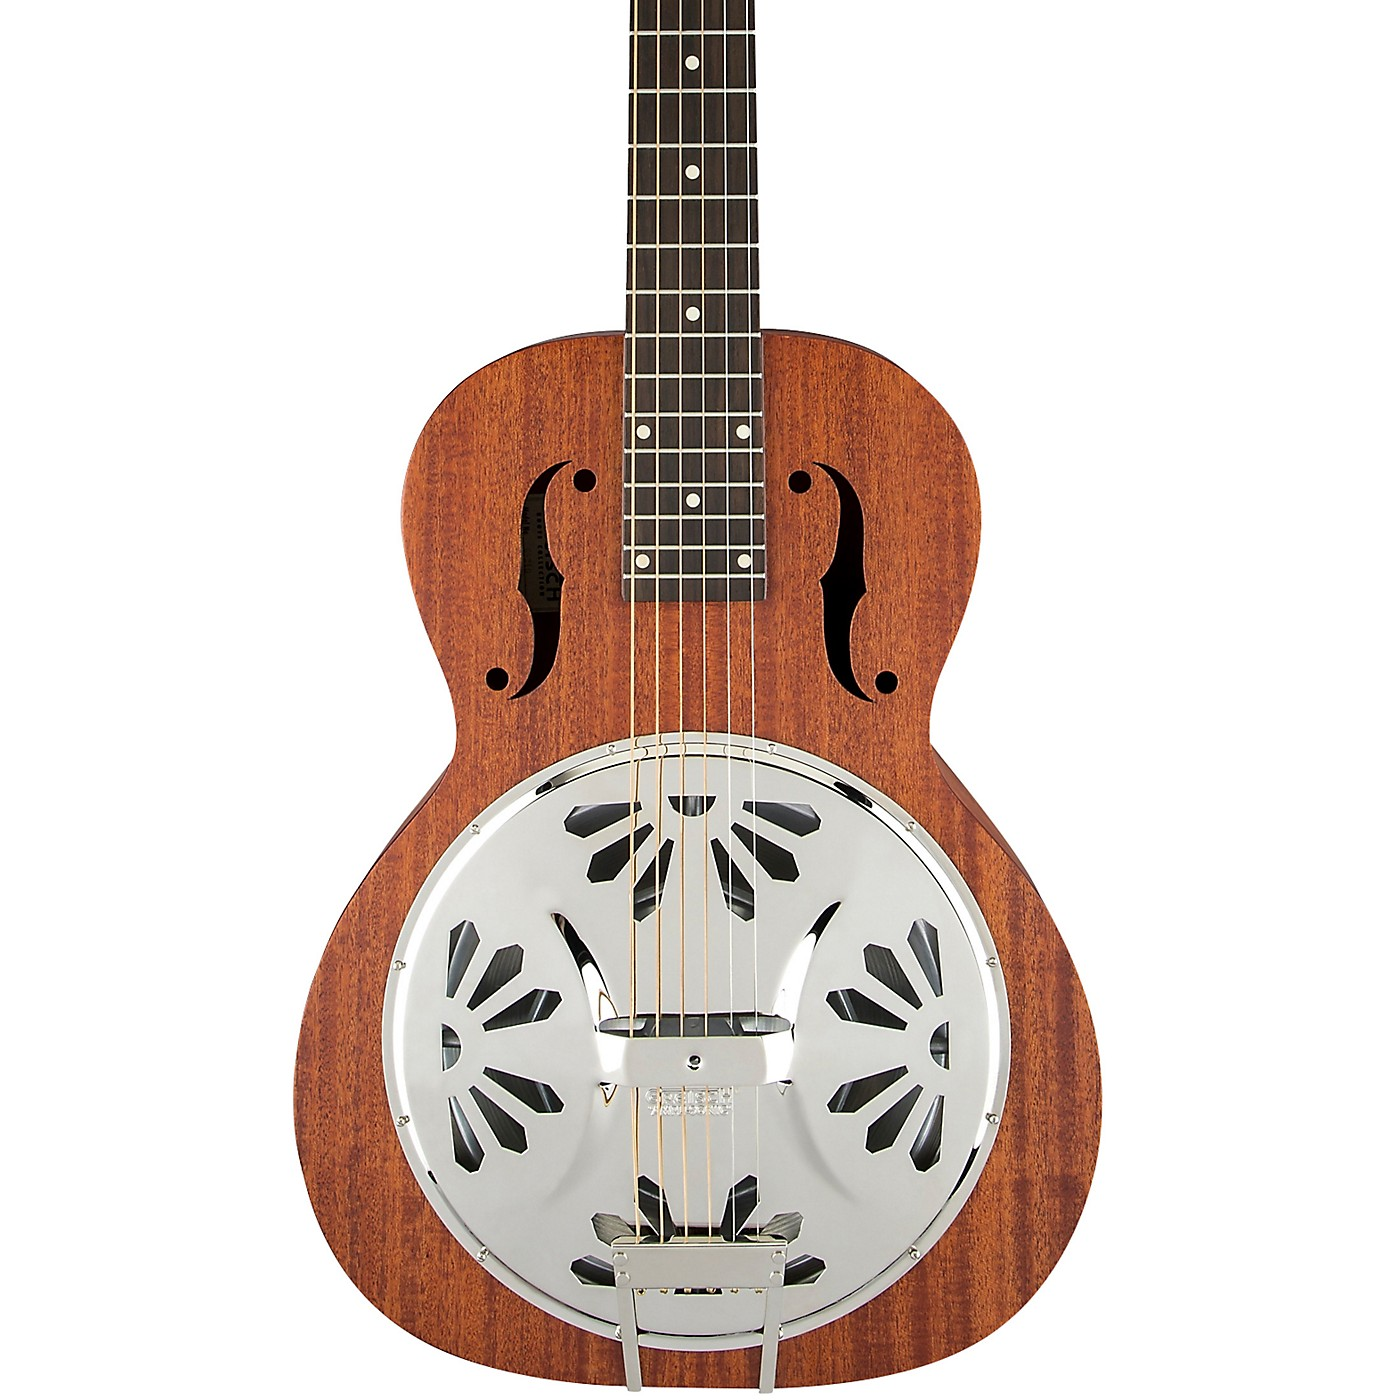 Gretsch Guitars G9210 Boxcar Square-Neck Resonator Guitar with Padauk Fingerboard thumbnail